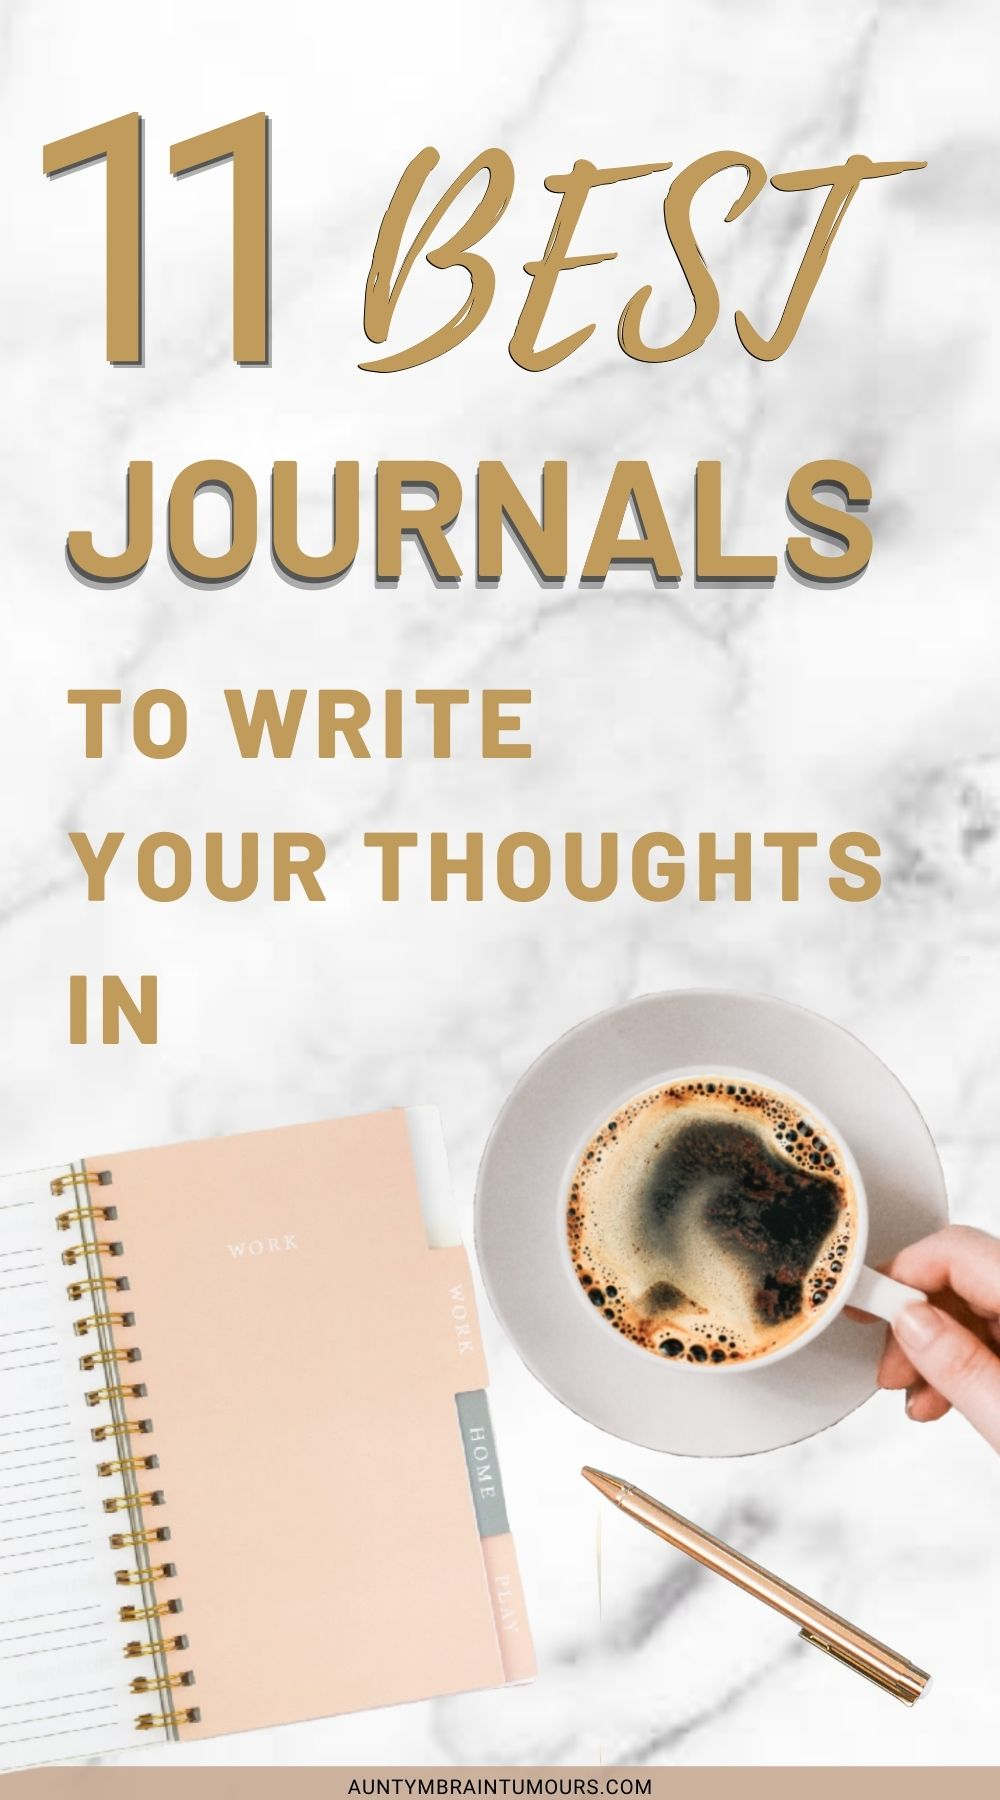 11 BEST JOURNALS TO WRITE YOUR THOUGHTS IN